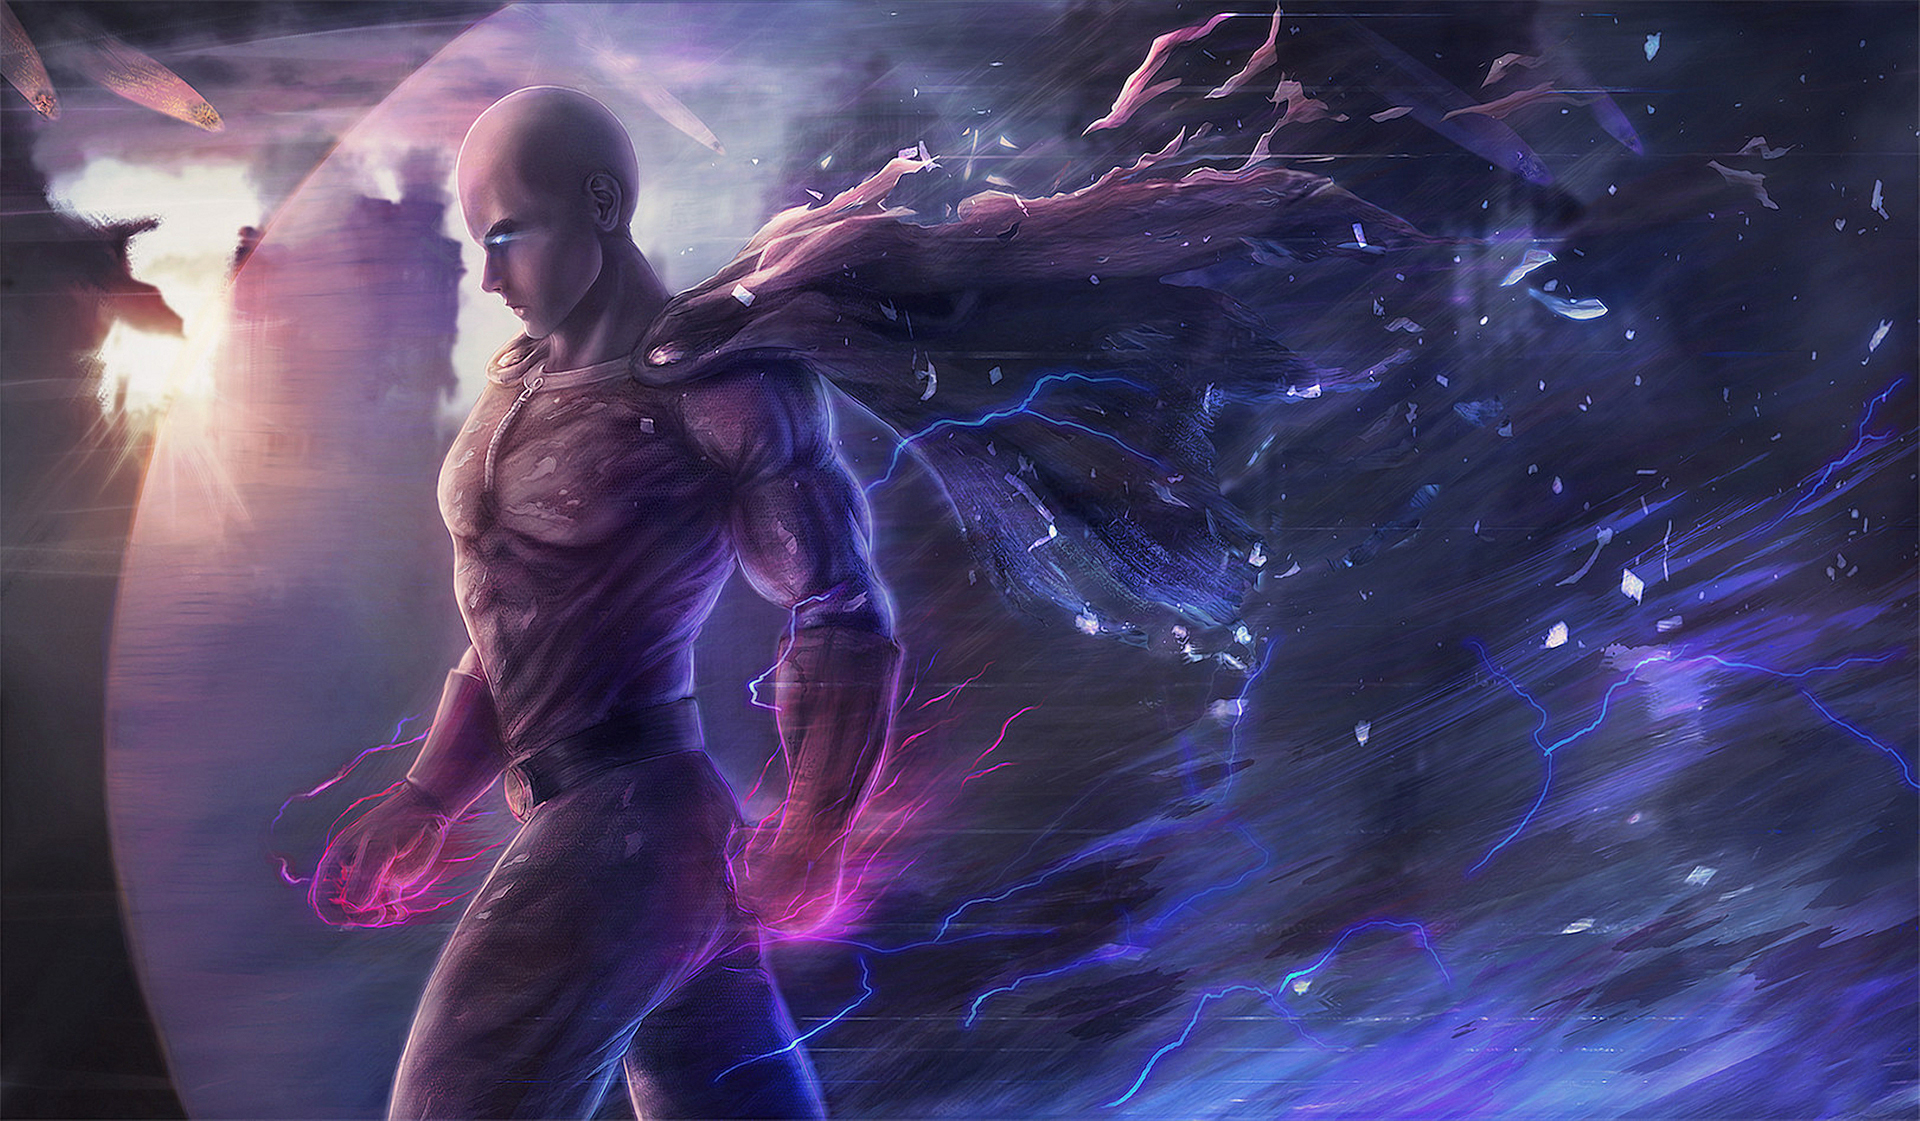 saitama one punch man hd anime 4k wallpapers images